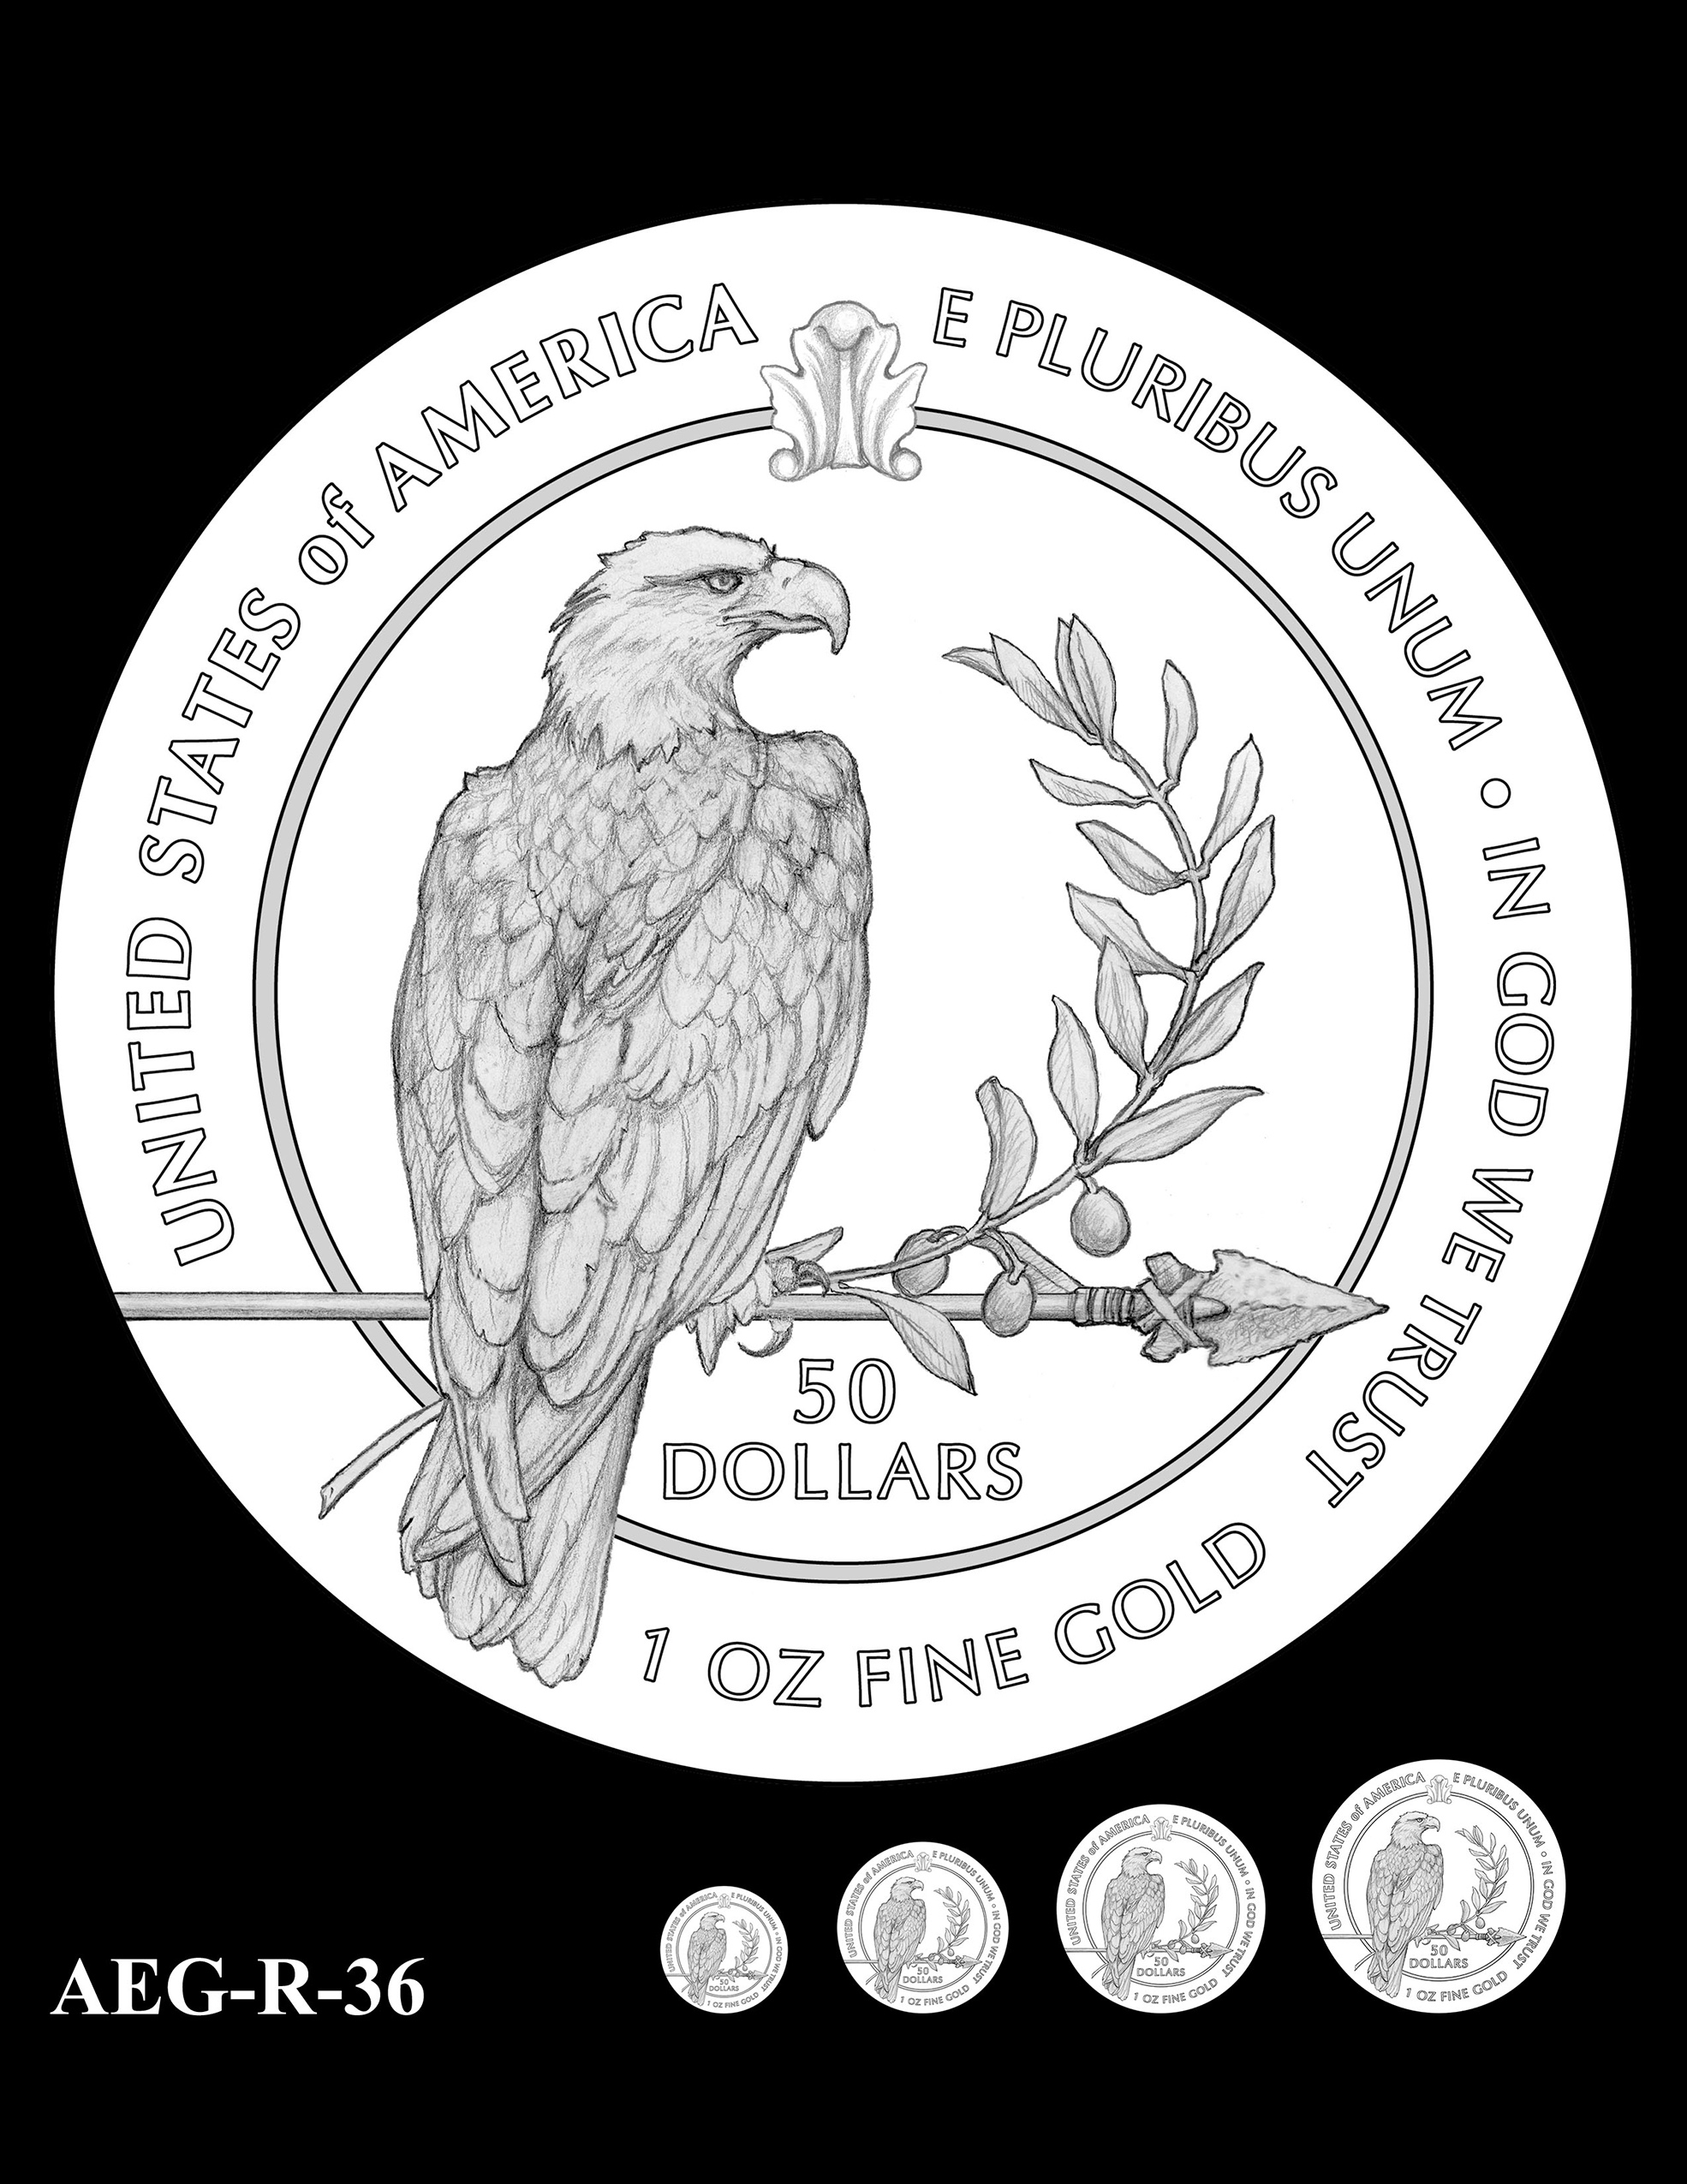 AEG-R-36 -- American Eagle Proof and Bullion Gold Coin - Reverse